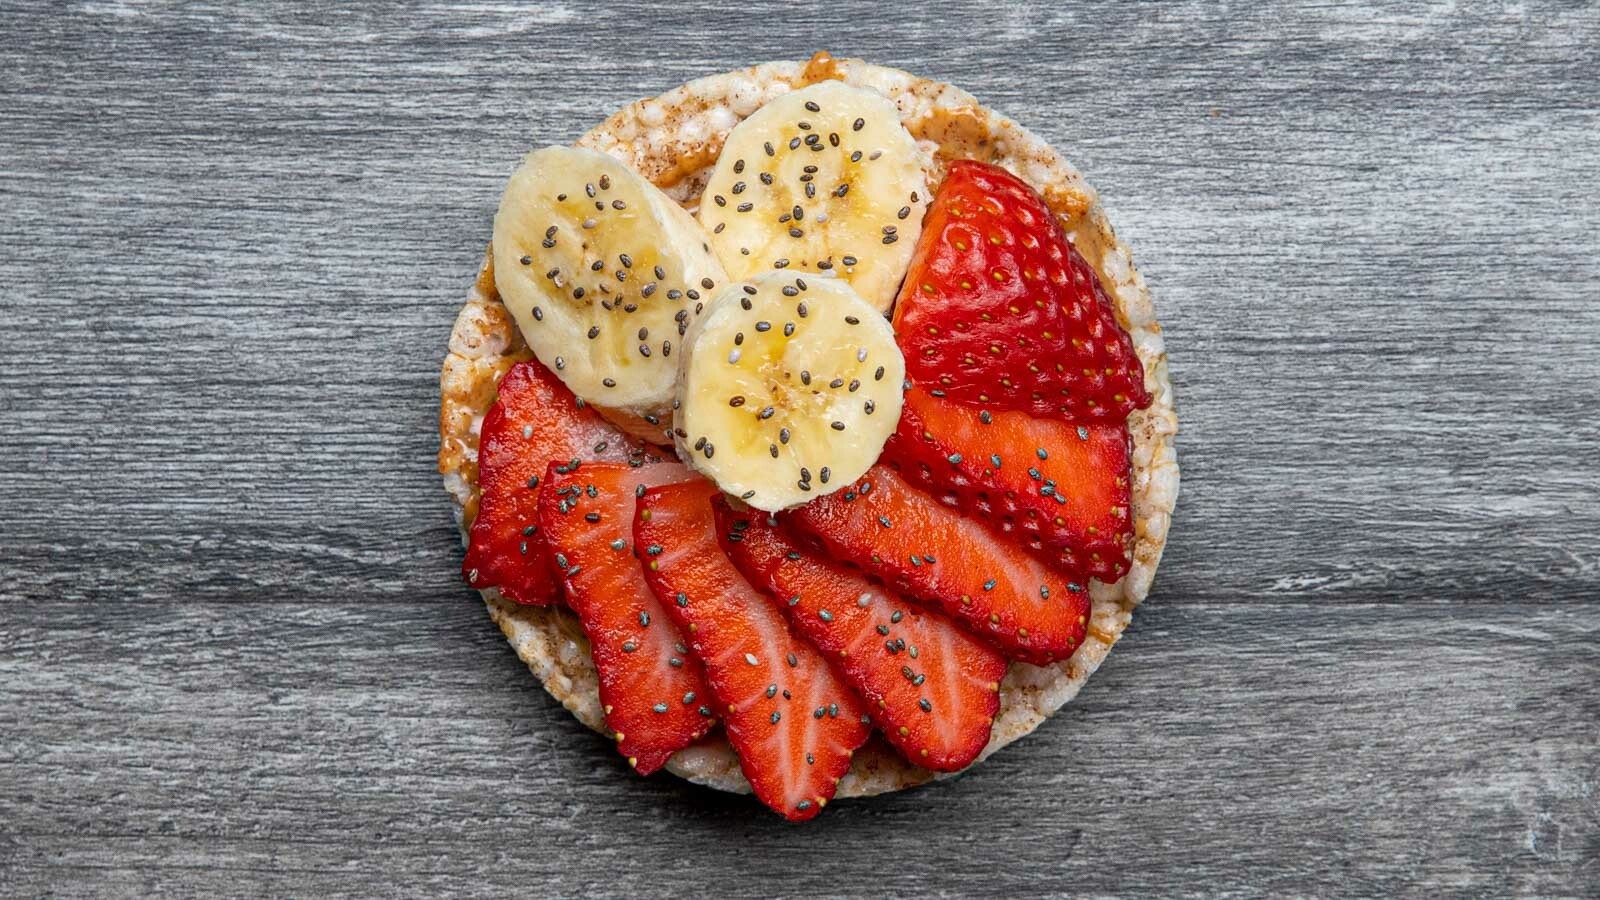 Rice cake with bananas and strawberries